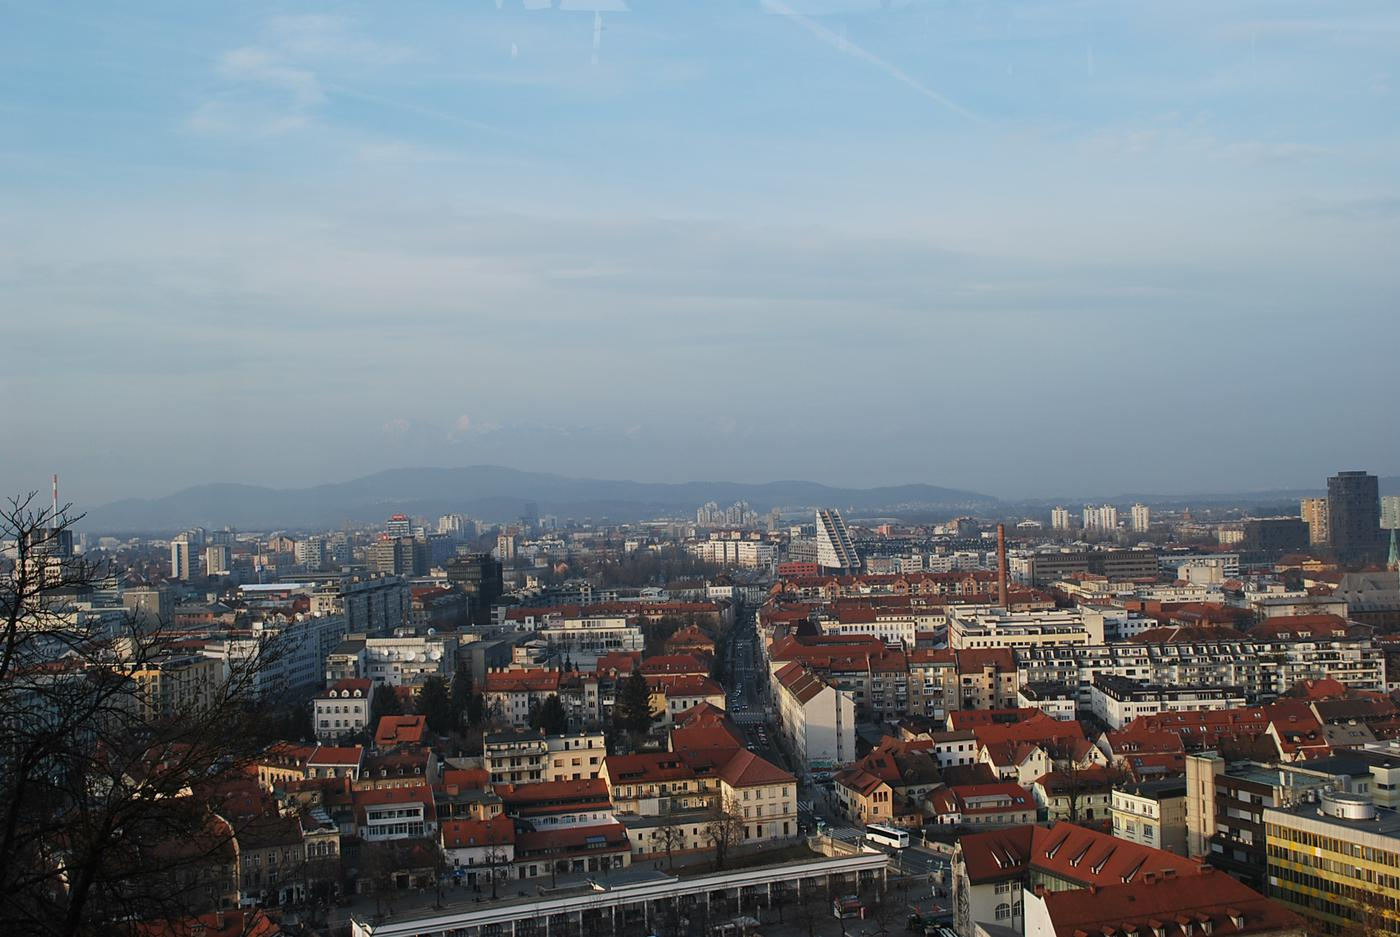 The fifth annual Atlantis study trip to Ljubljana